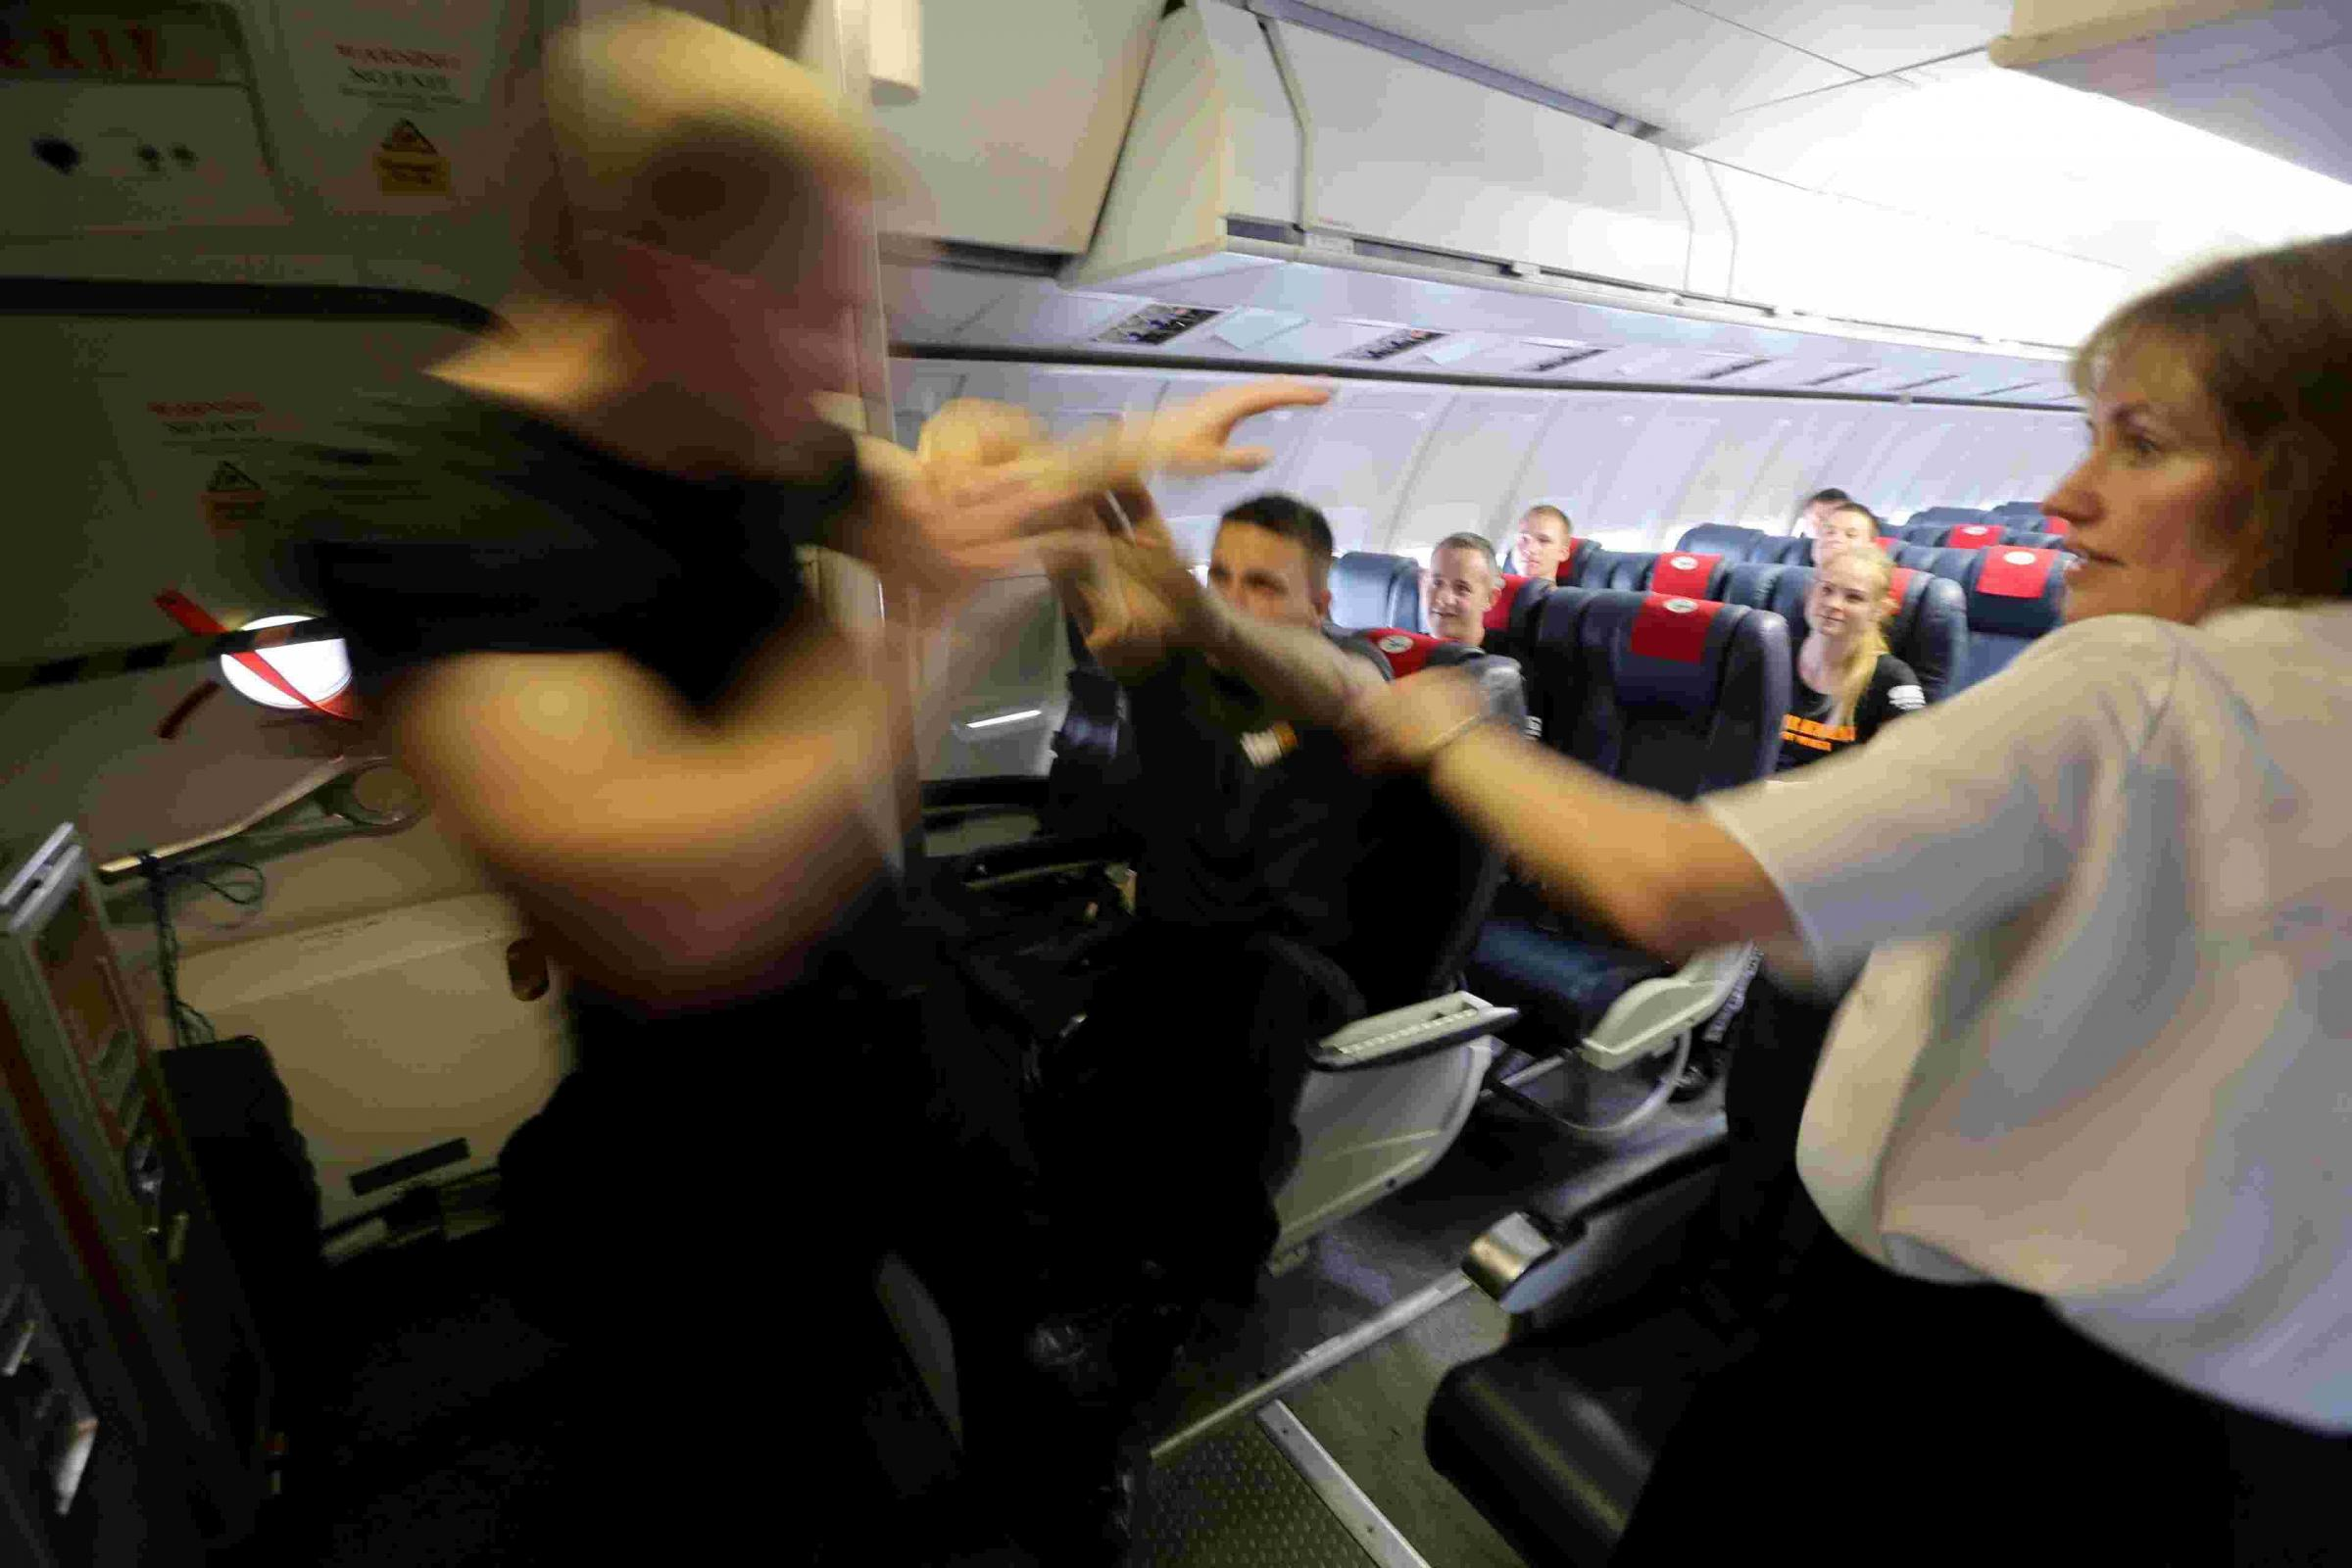 VIDEO: Watch 'hostages' take over a plane in self-defence wor